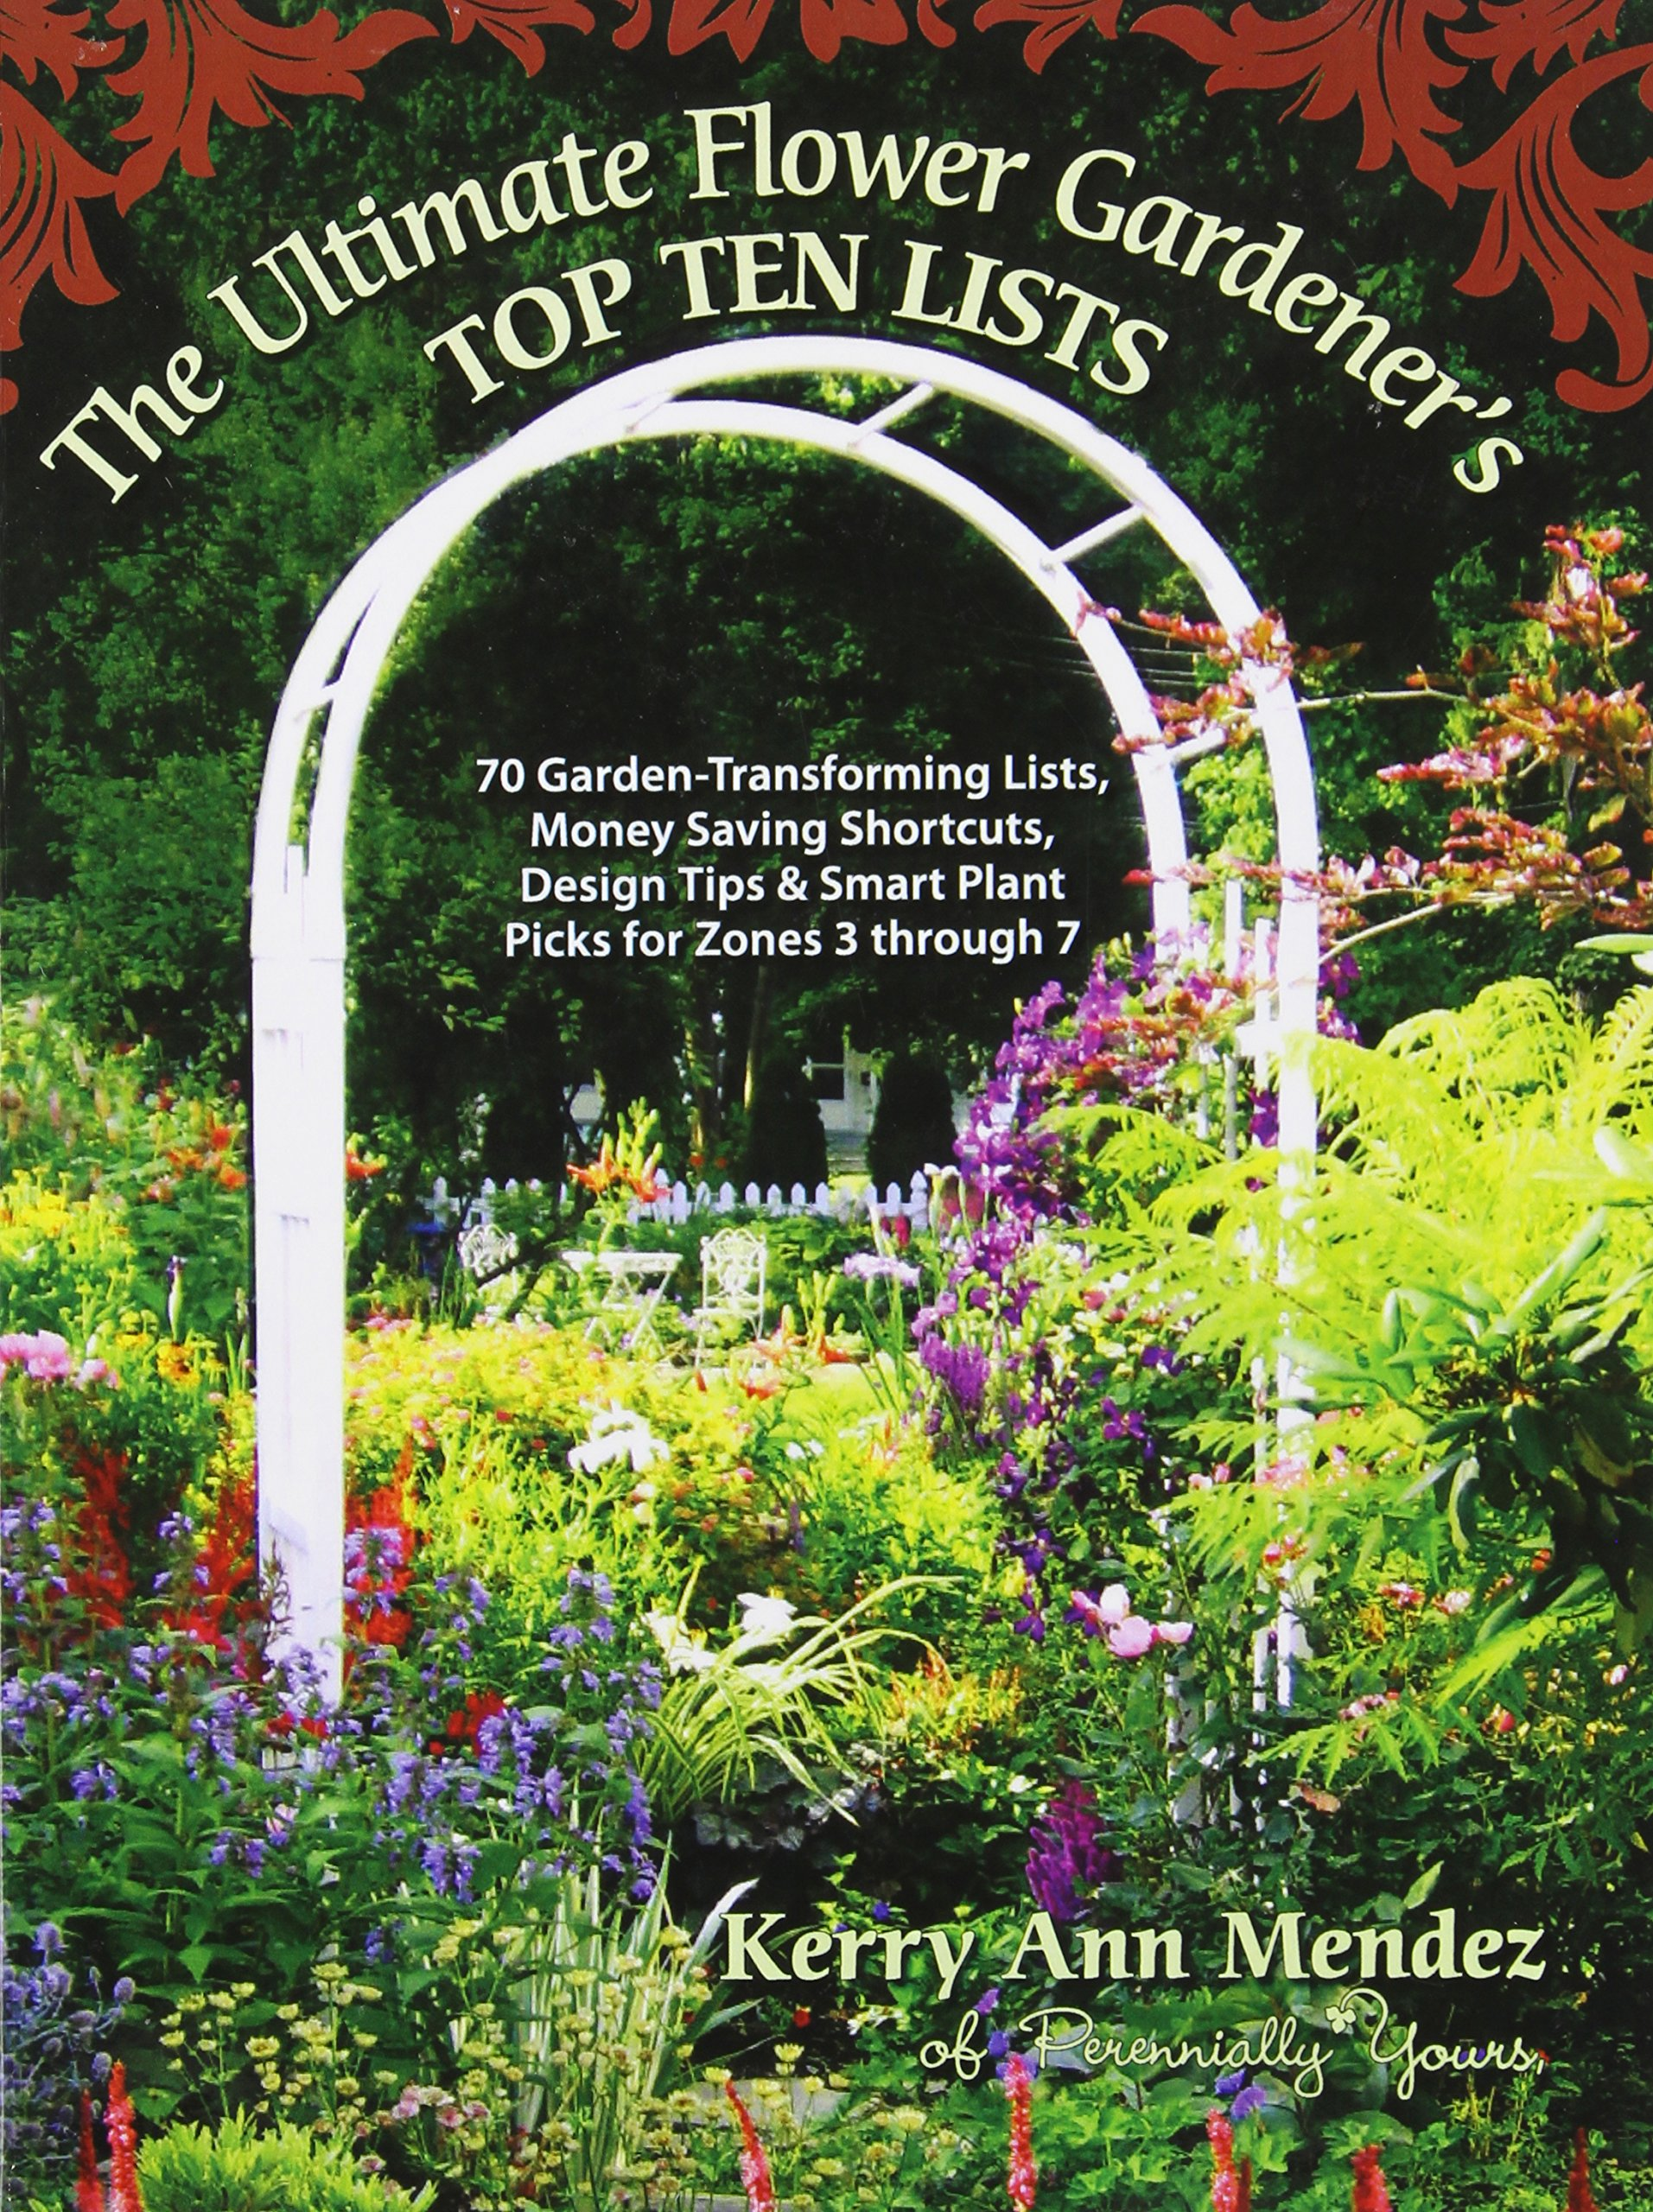 Download The Ultimate Flower Gardener's Top Ten Lists: 70 Garden-Transforming Lists, Money Saving Shortcuts, Design Tips & Smart Plant Picks for Zones 3 Through 7 PDF